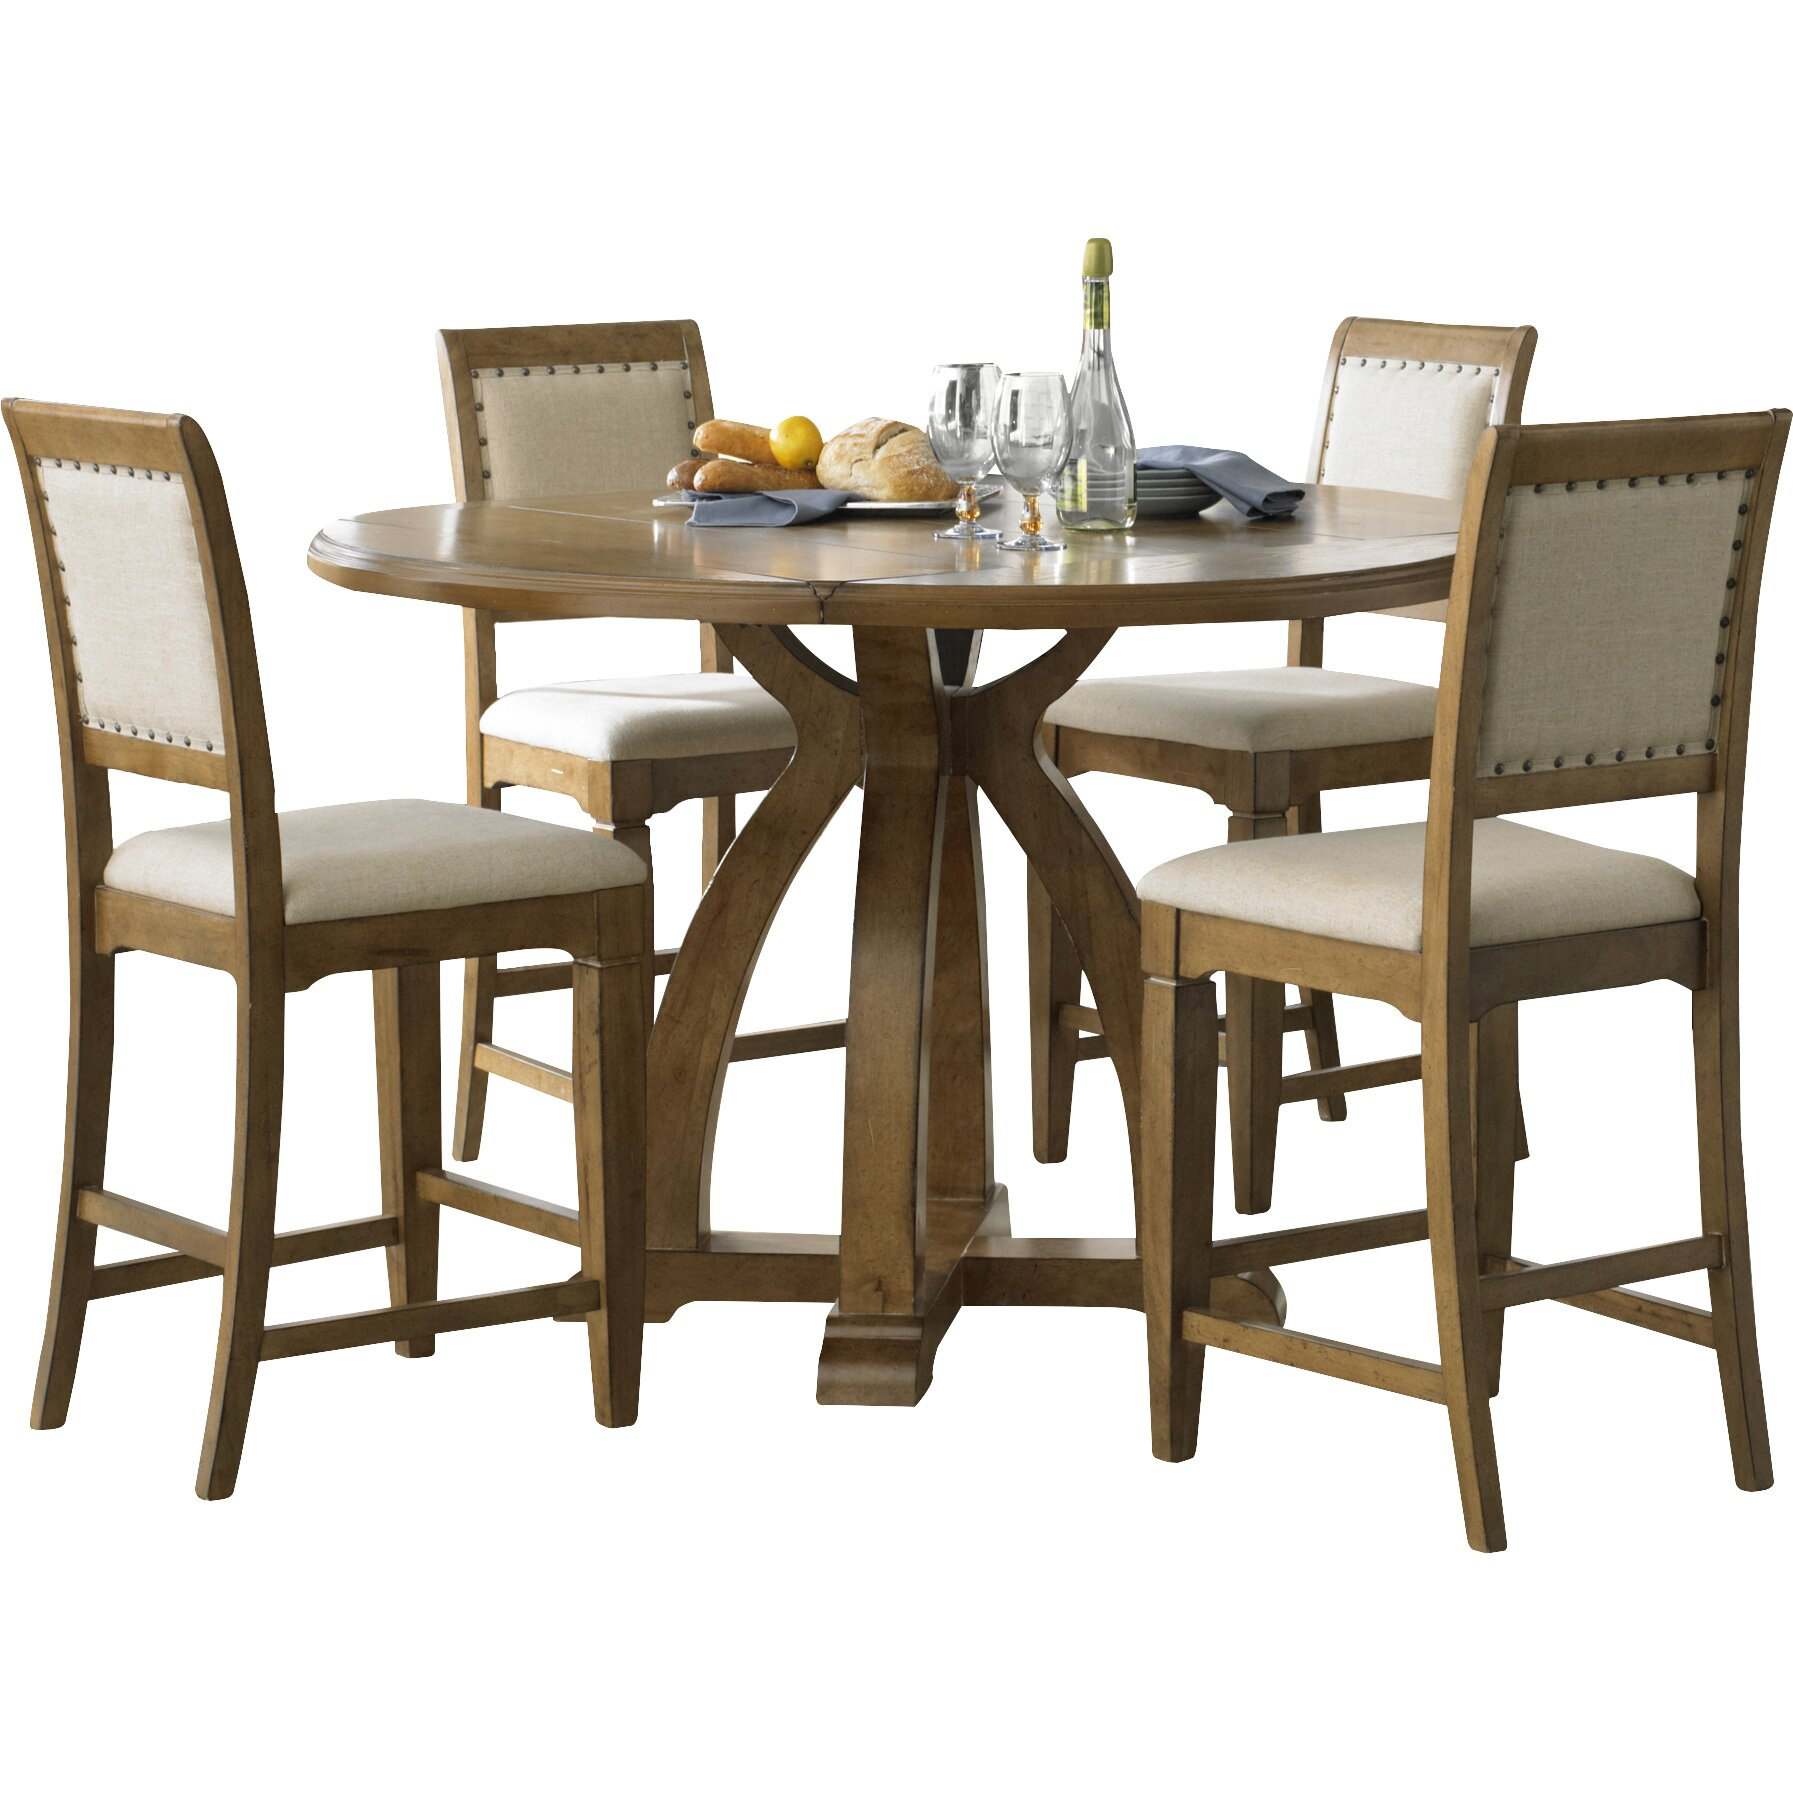 Carrie Dining Counter Height Table Base | Wayfair With Regard To Current Nakano Counter Height Pedestal Dining Tables (View 11 of 15)